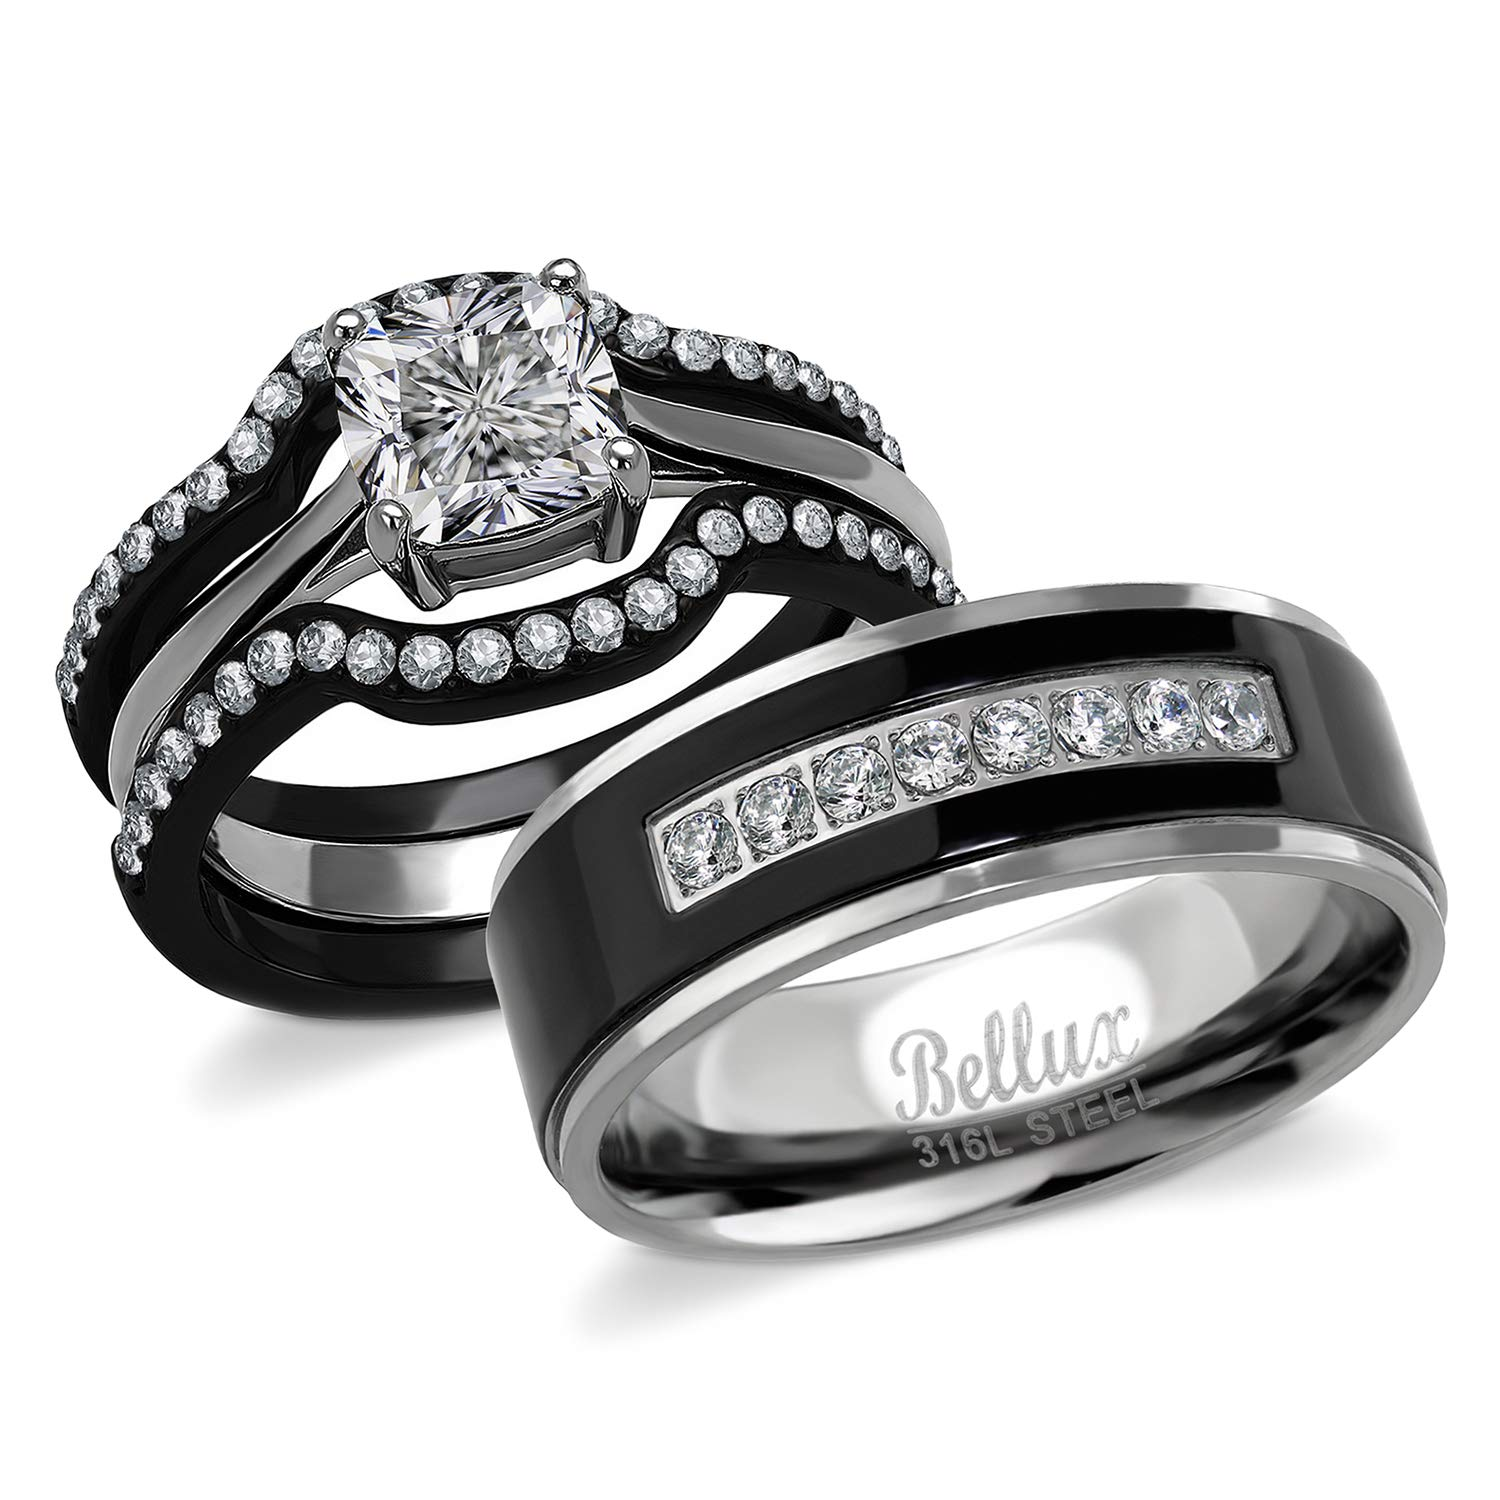 Wedding Bands For Women.Bellux His And Hers Engagement Rings For Women Wedding Rings For Women Couples Rings Promise Rings For Couples Stainless Steel 1 03 Carats